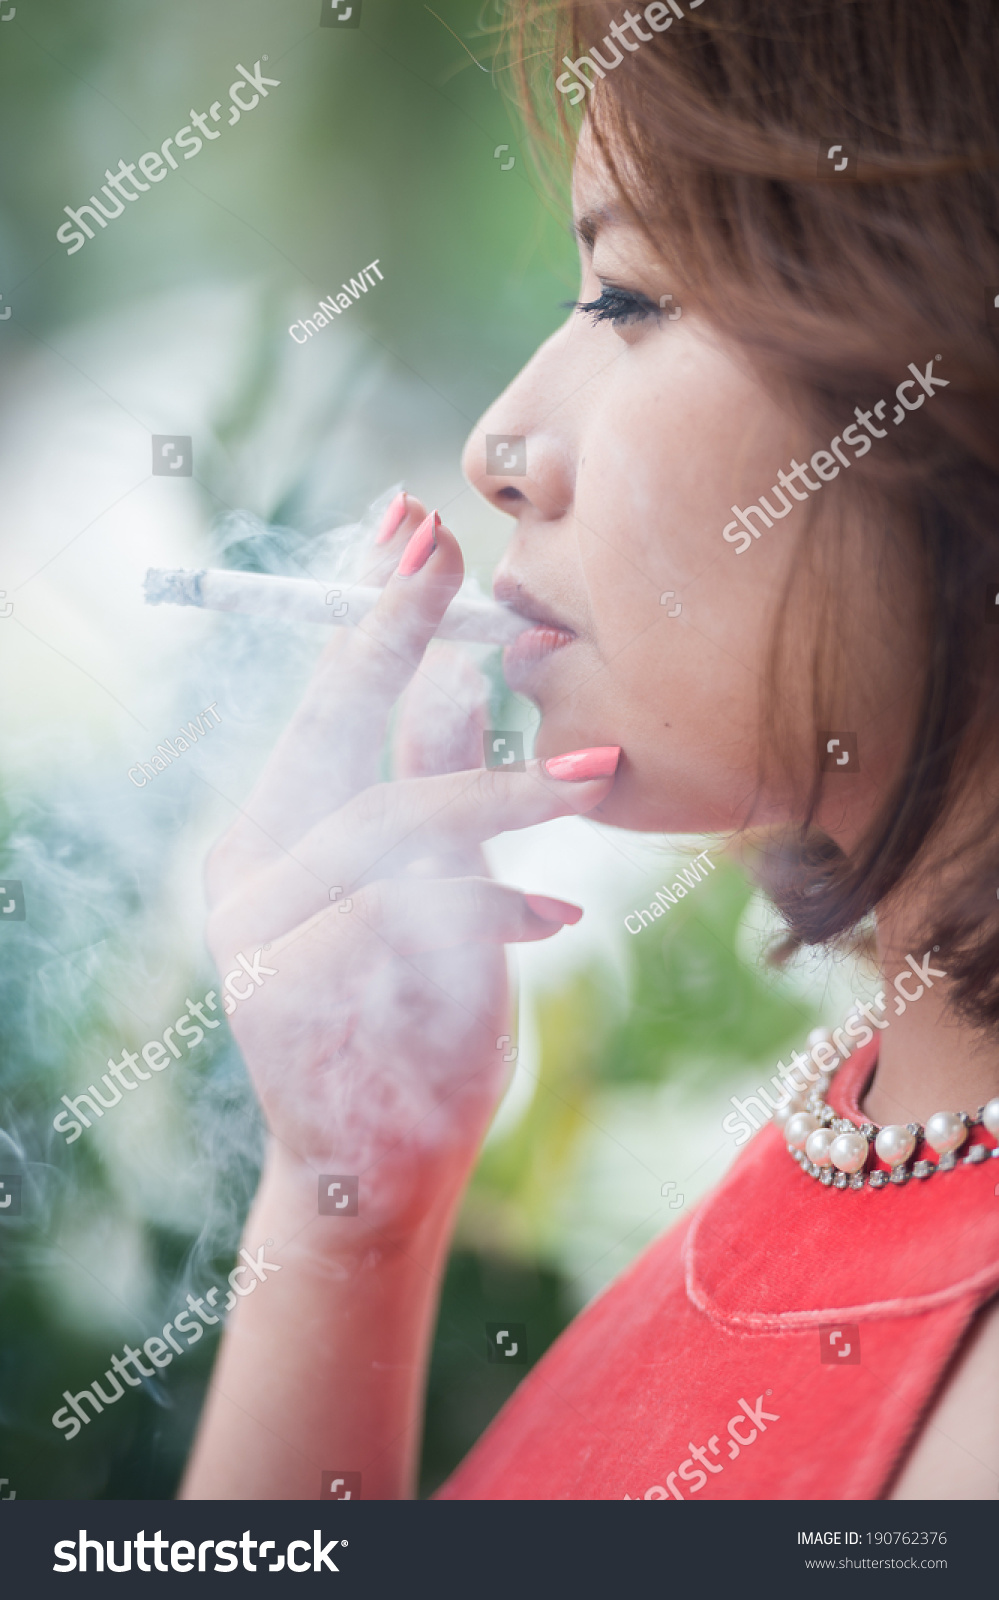 http://image.shutterstock.com/z/stock-photo-young-asian-woman-smoking-cigarette-190762376.jpg